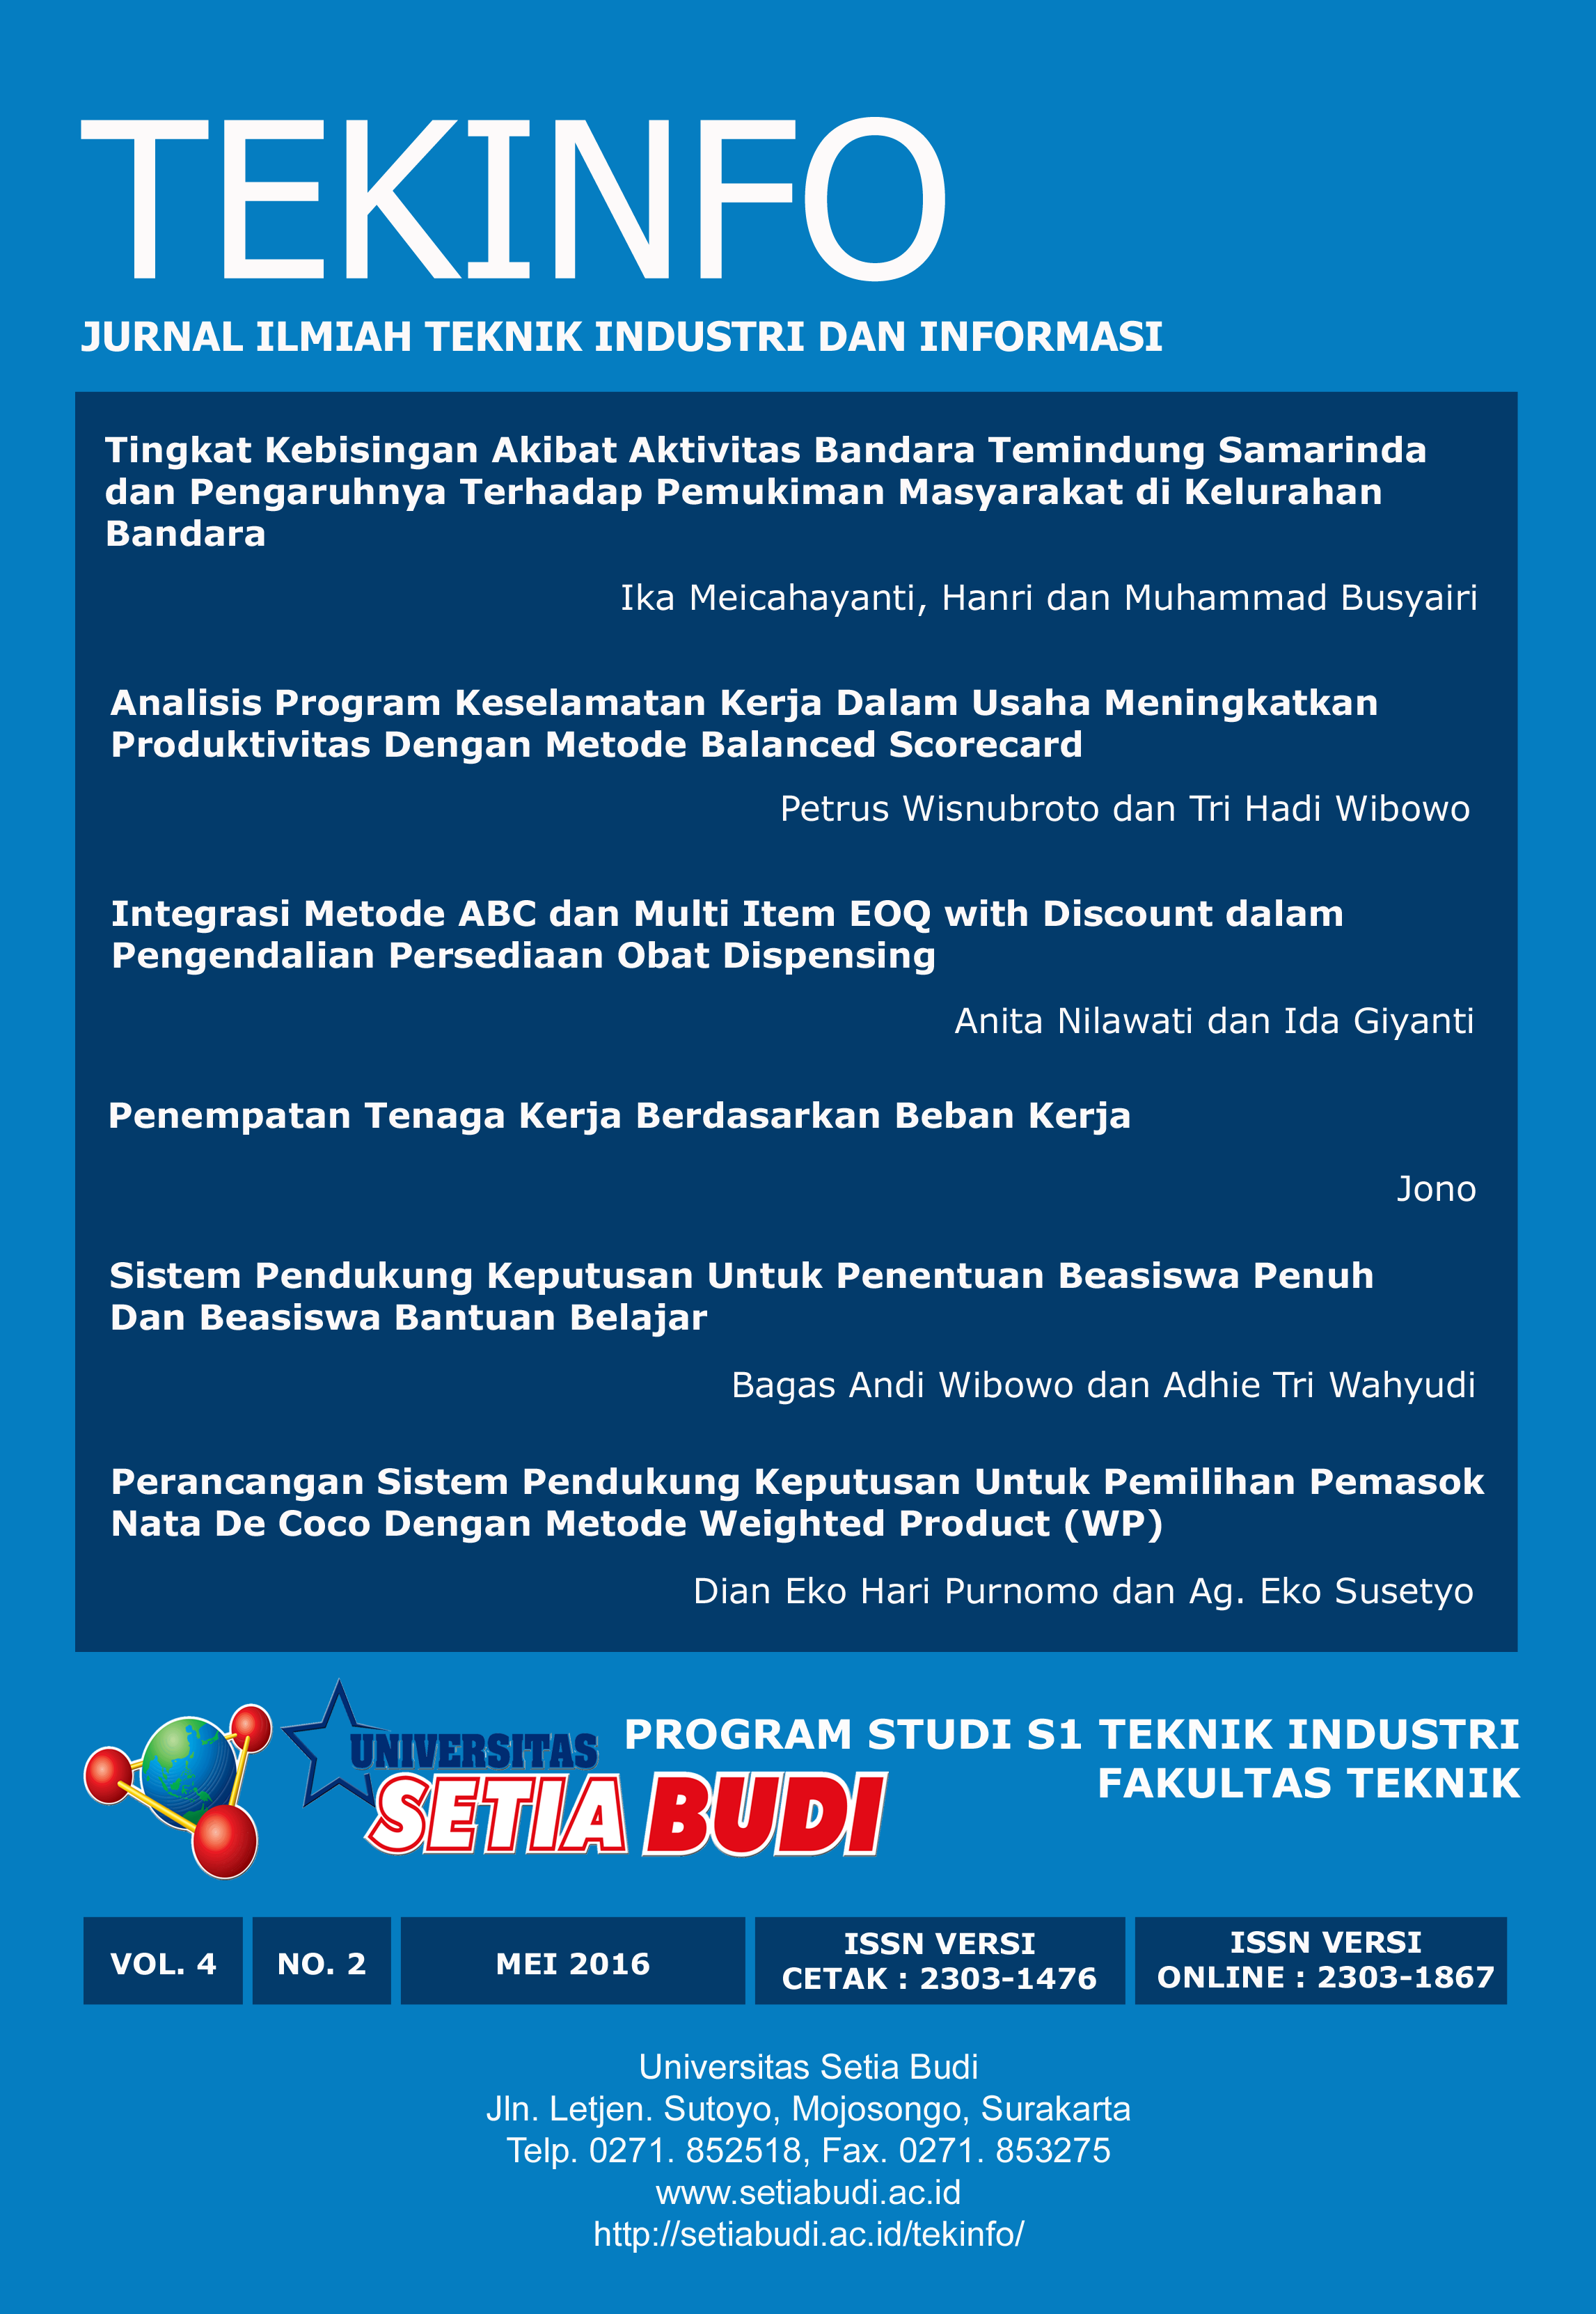 Tekinfo Vol 4 No 2